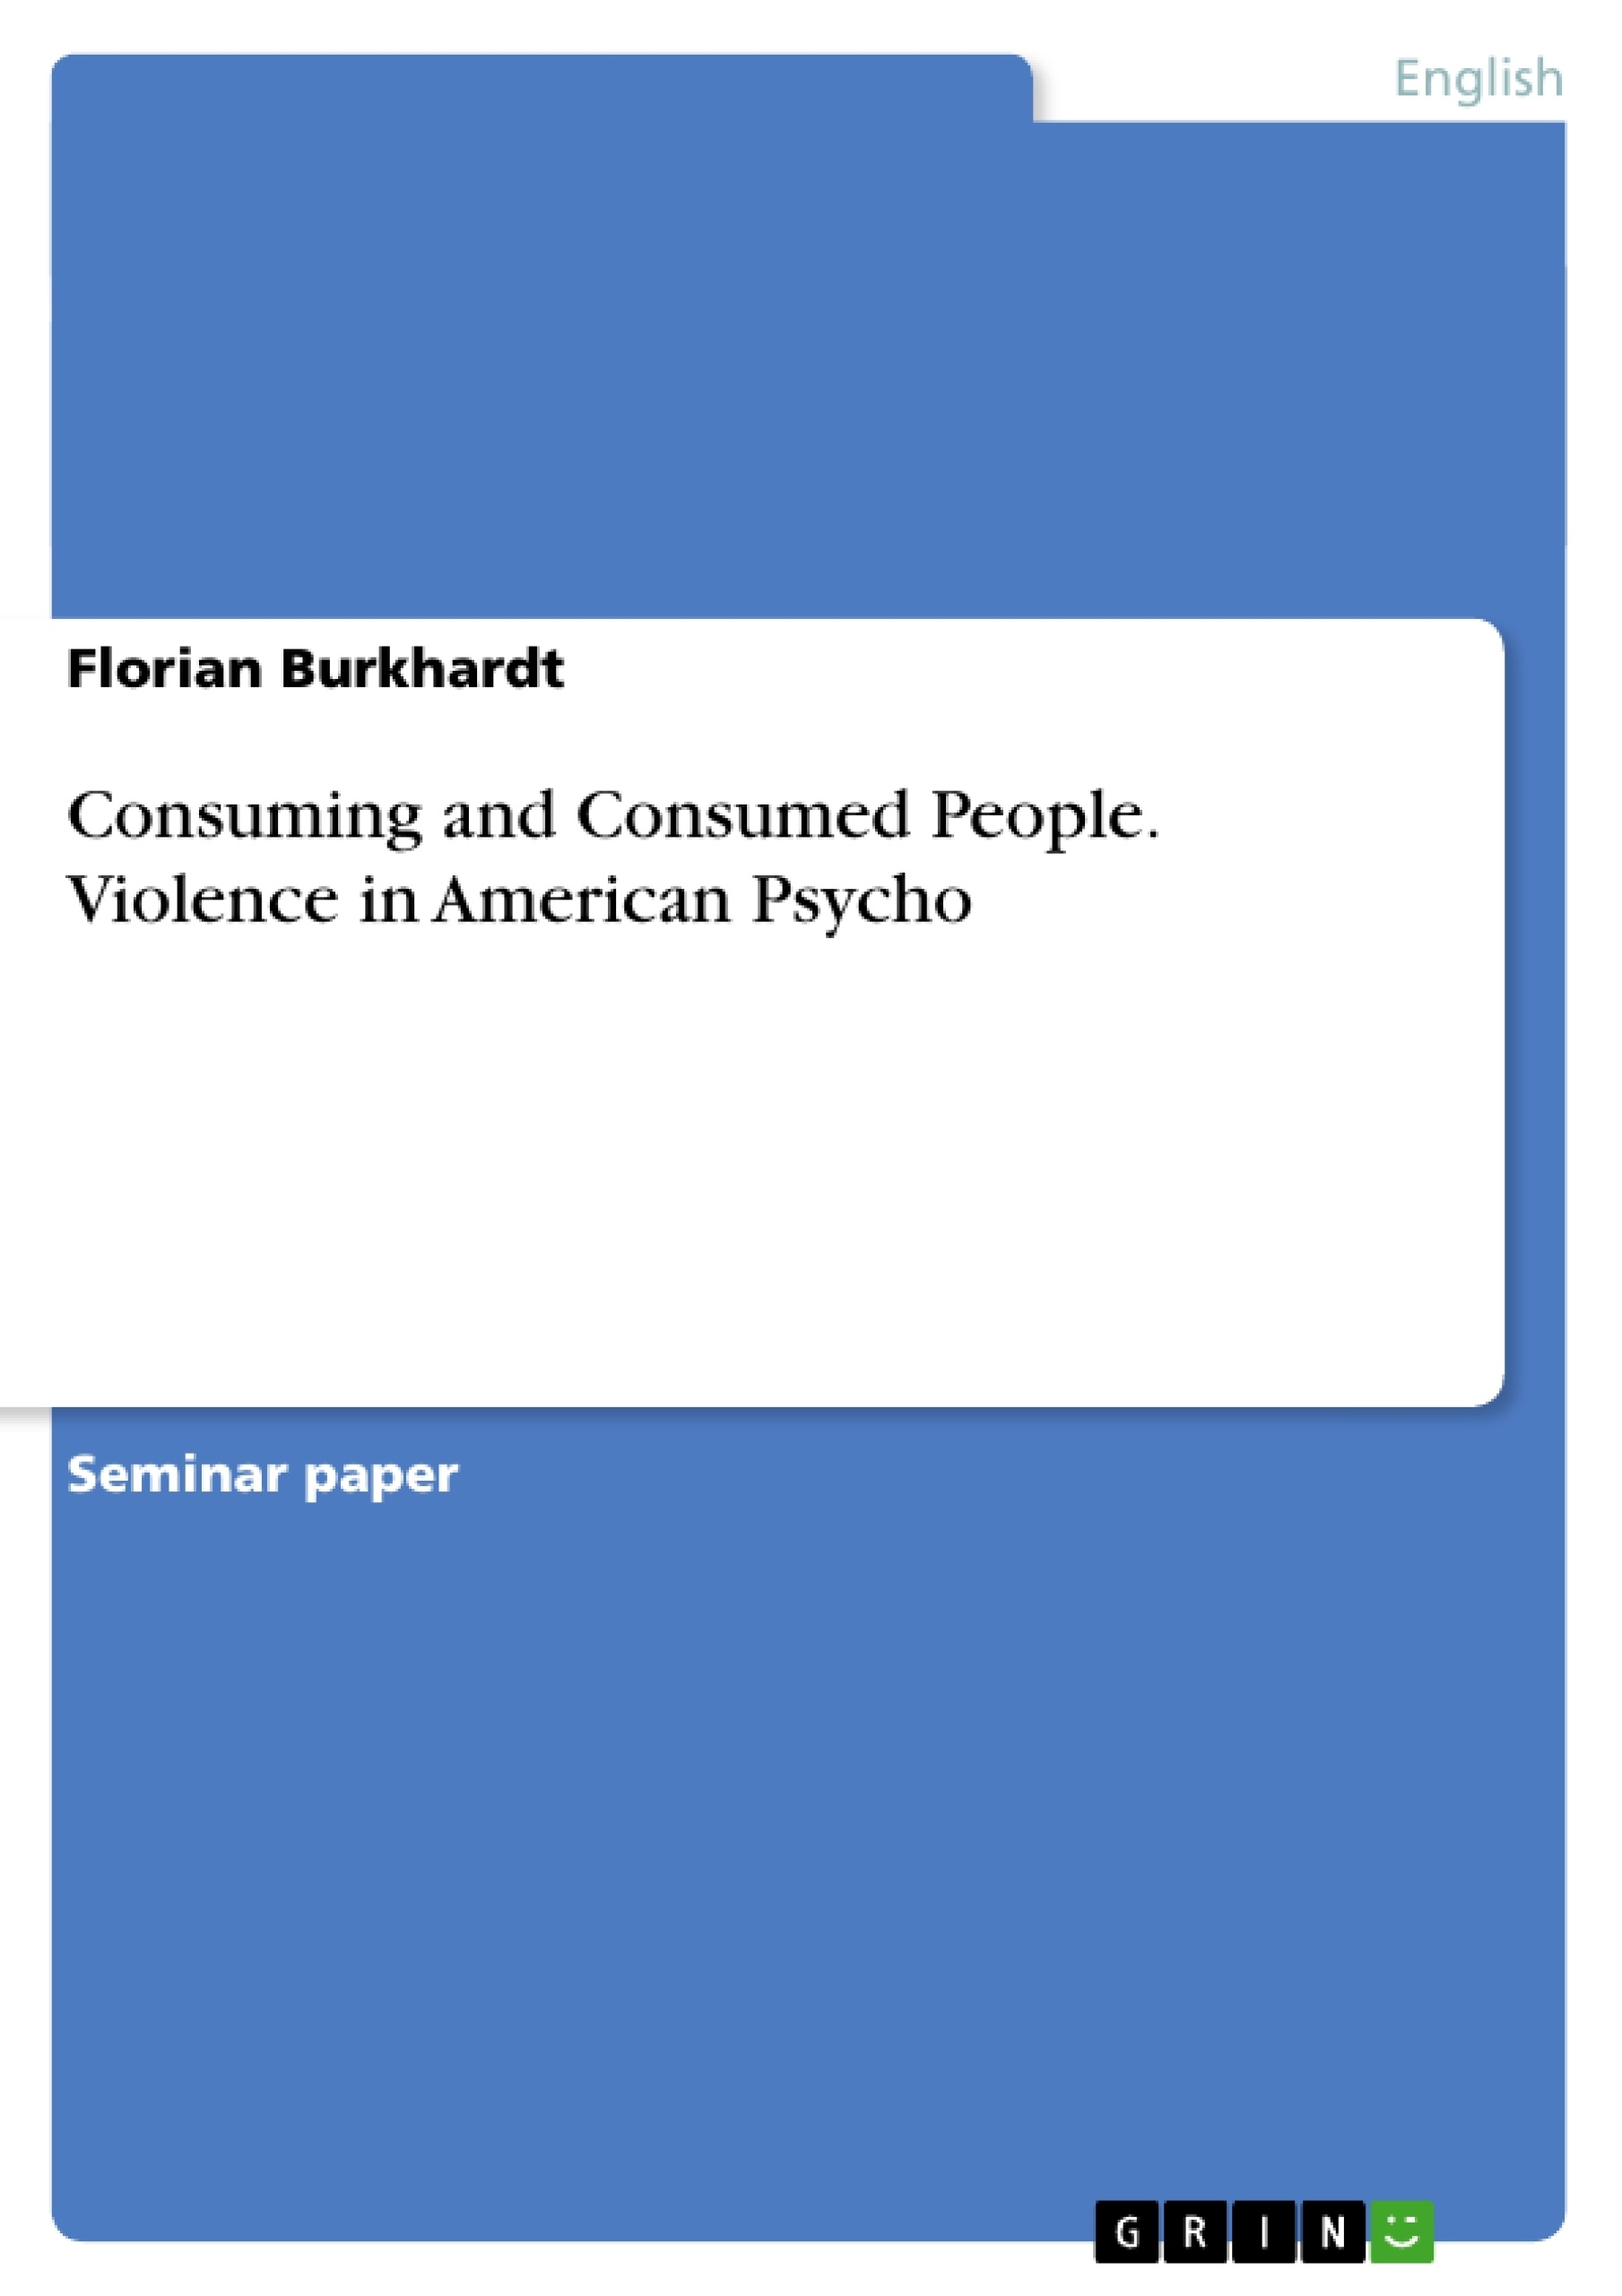 psycho essay consuming and consumed people violence in american consuming and consumed people violence in american psycho upload your own papers earn money and win